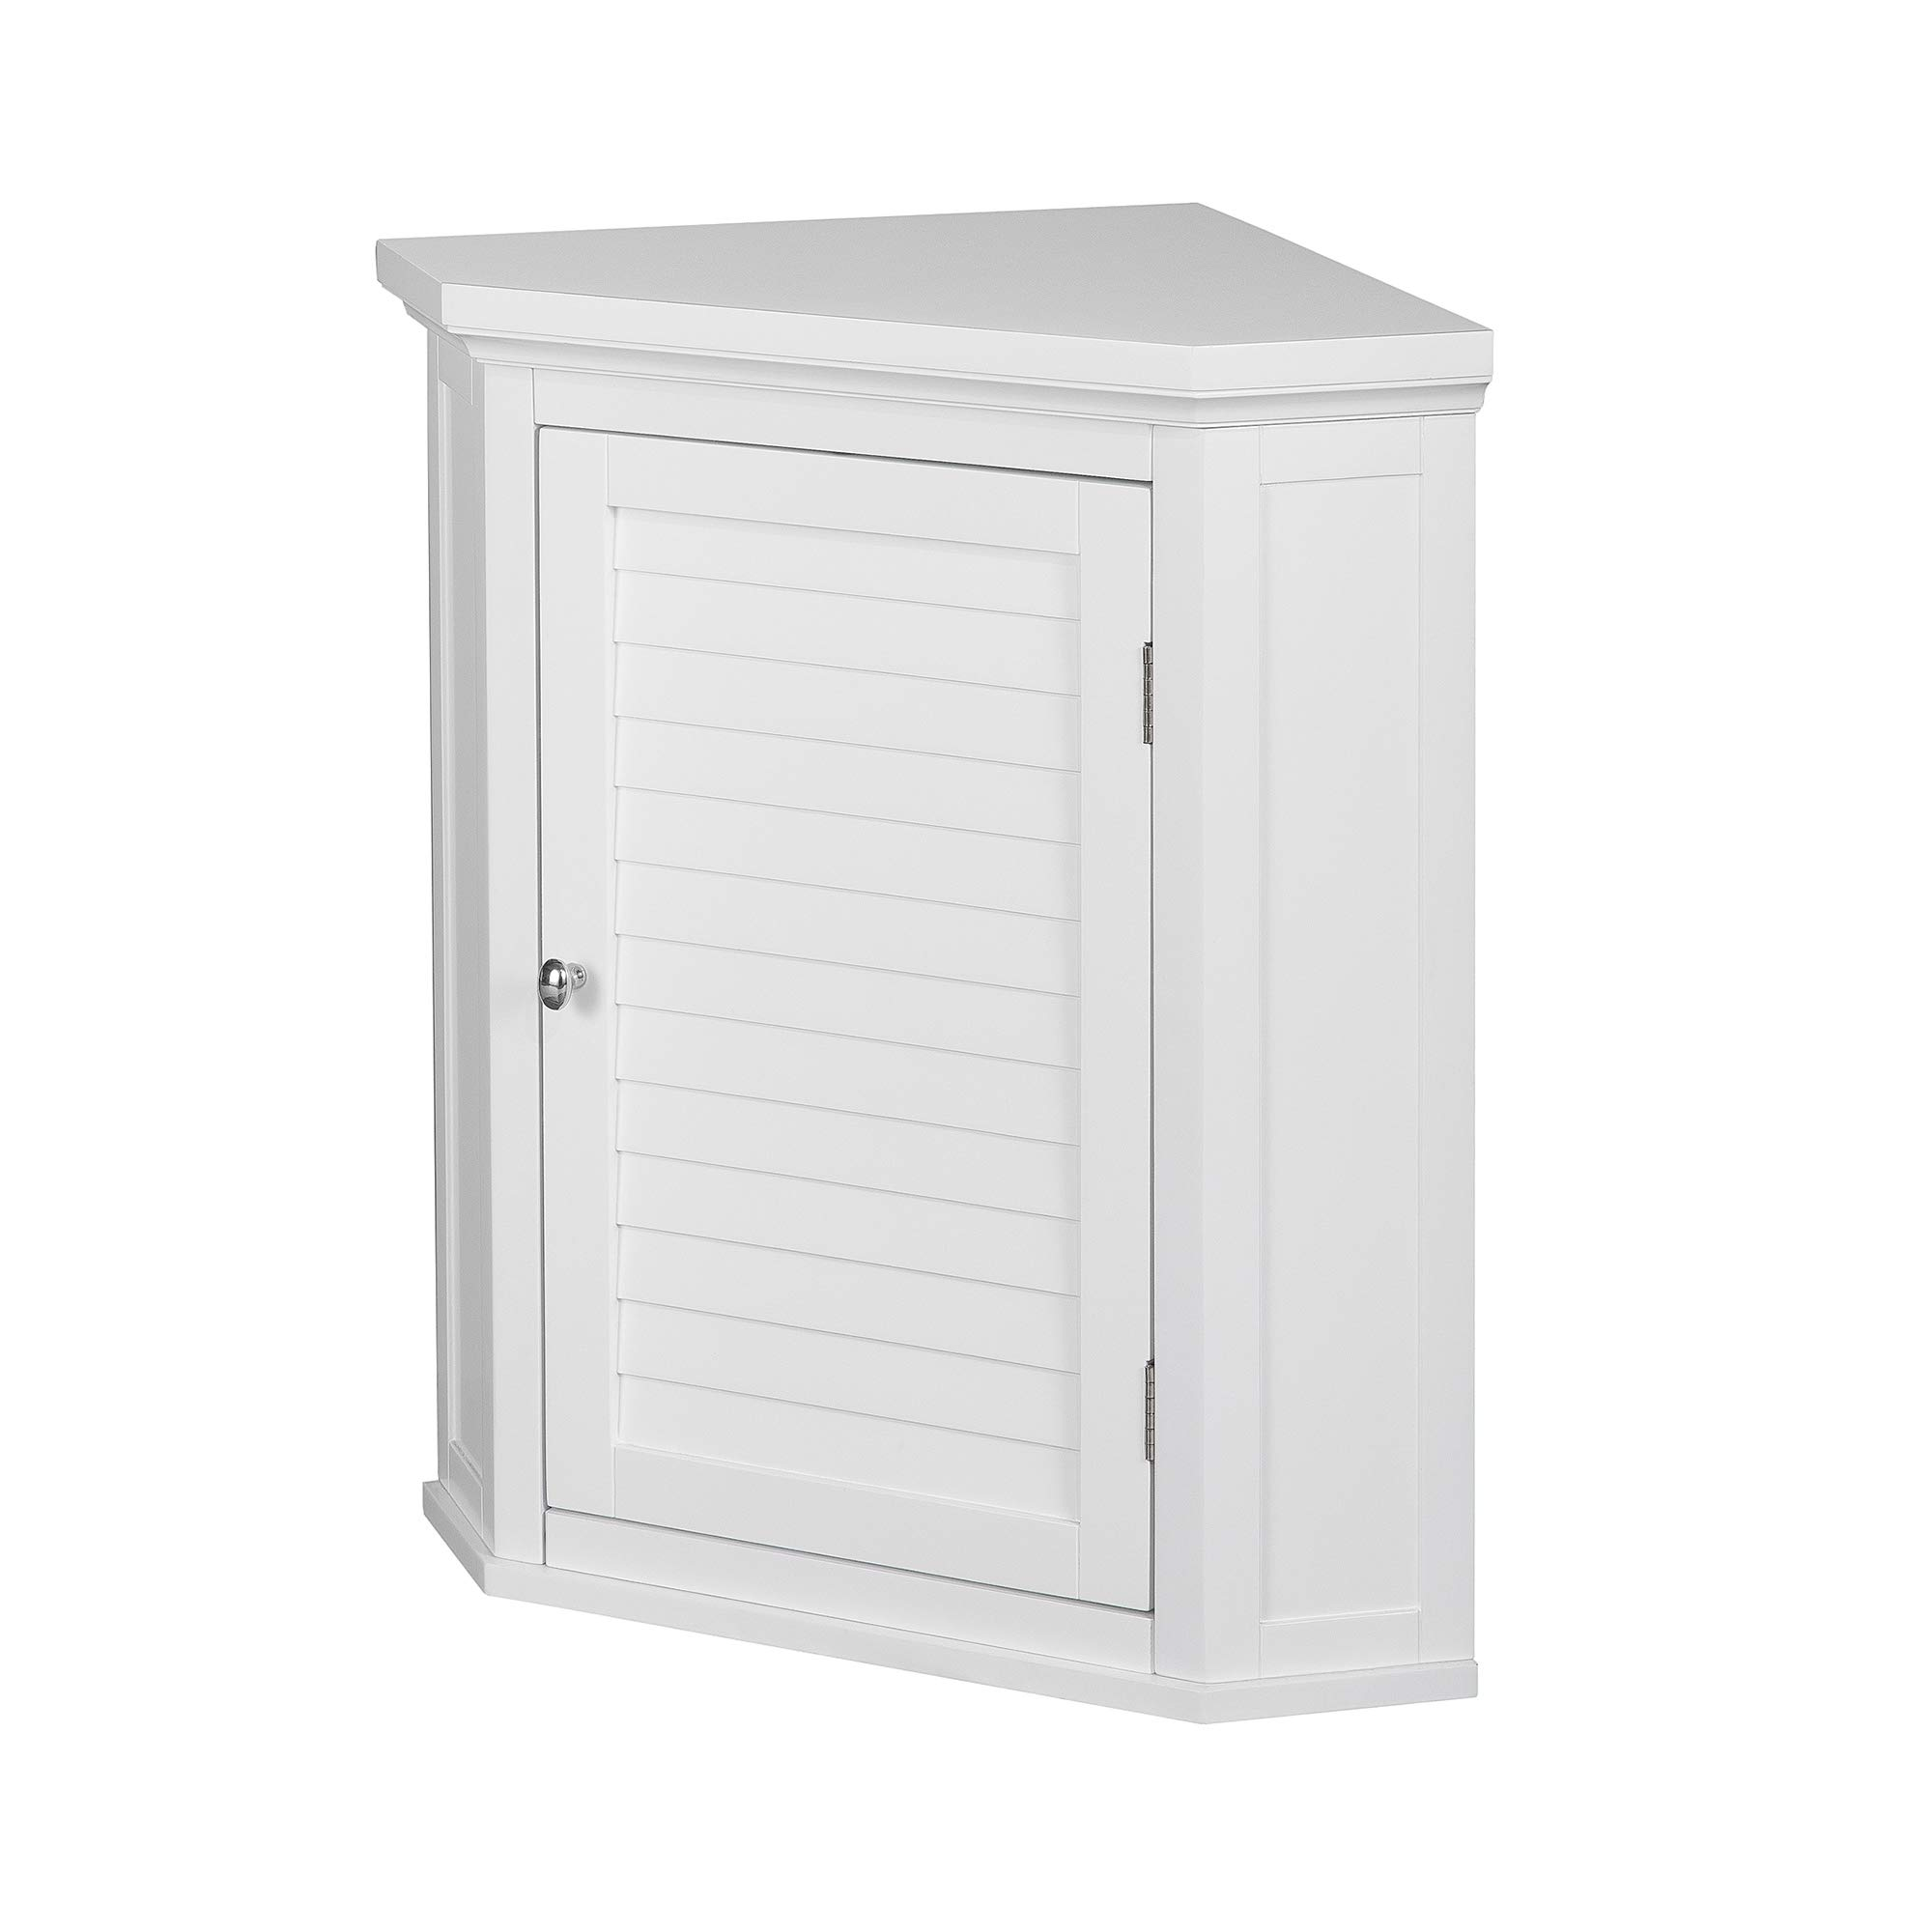 Versanora Wooden Cupboard Wall Mounted Bathroom Corner Storage Unit Mdf White 57 15 X 38 1 X 60 96 Cm Buy Online In Aruba At Aruba Desertcart Com Productid 165756822